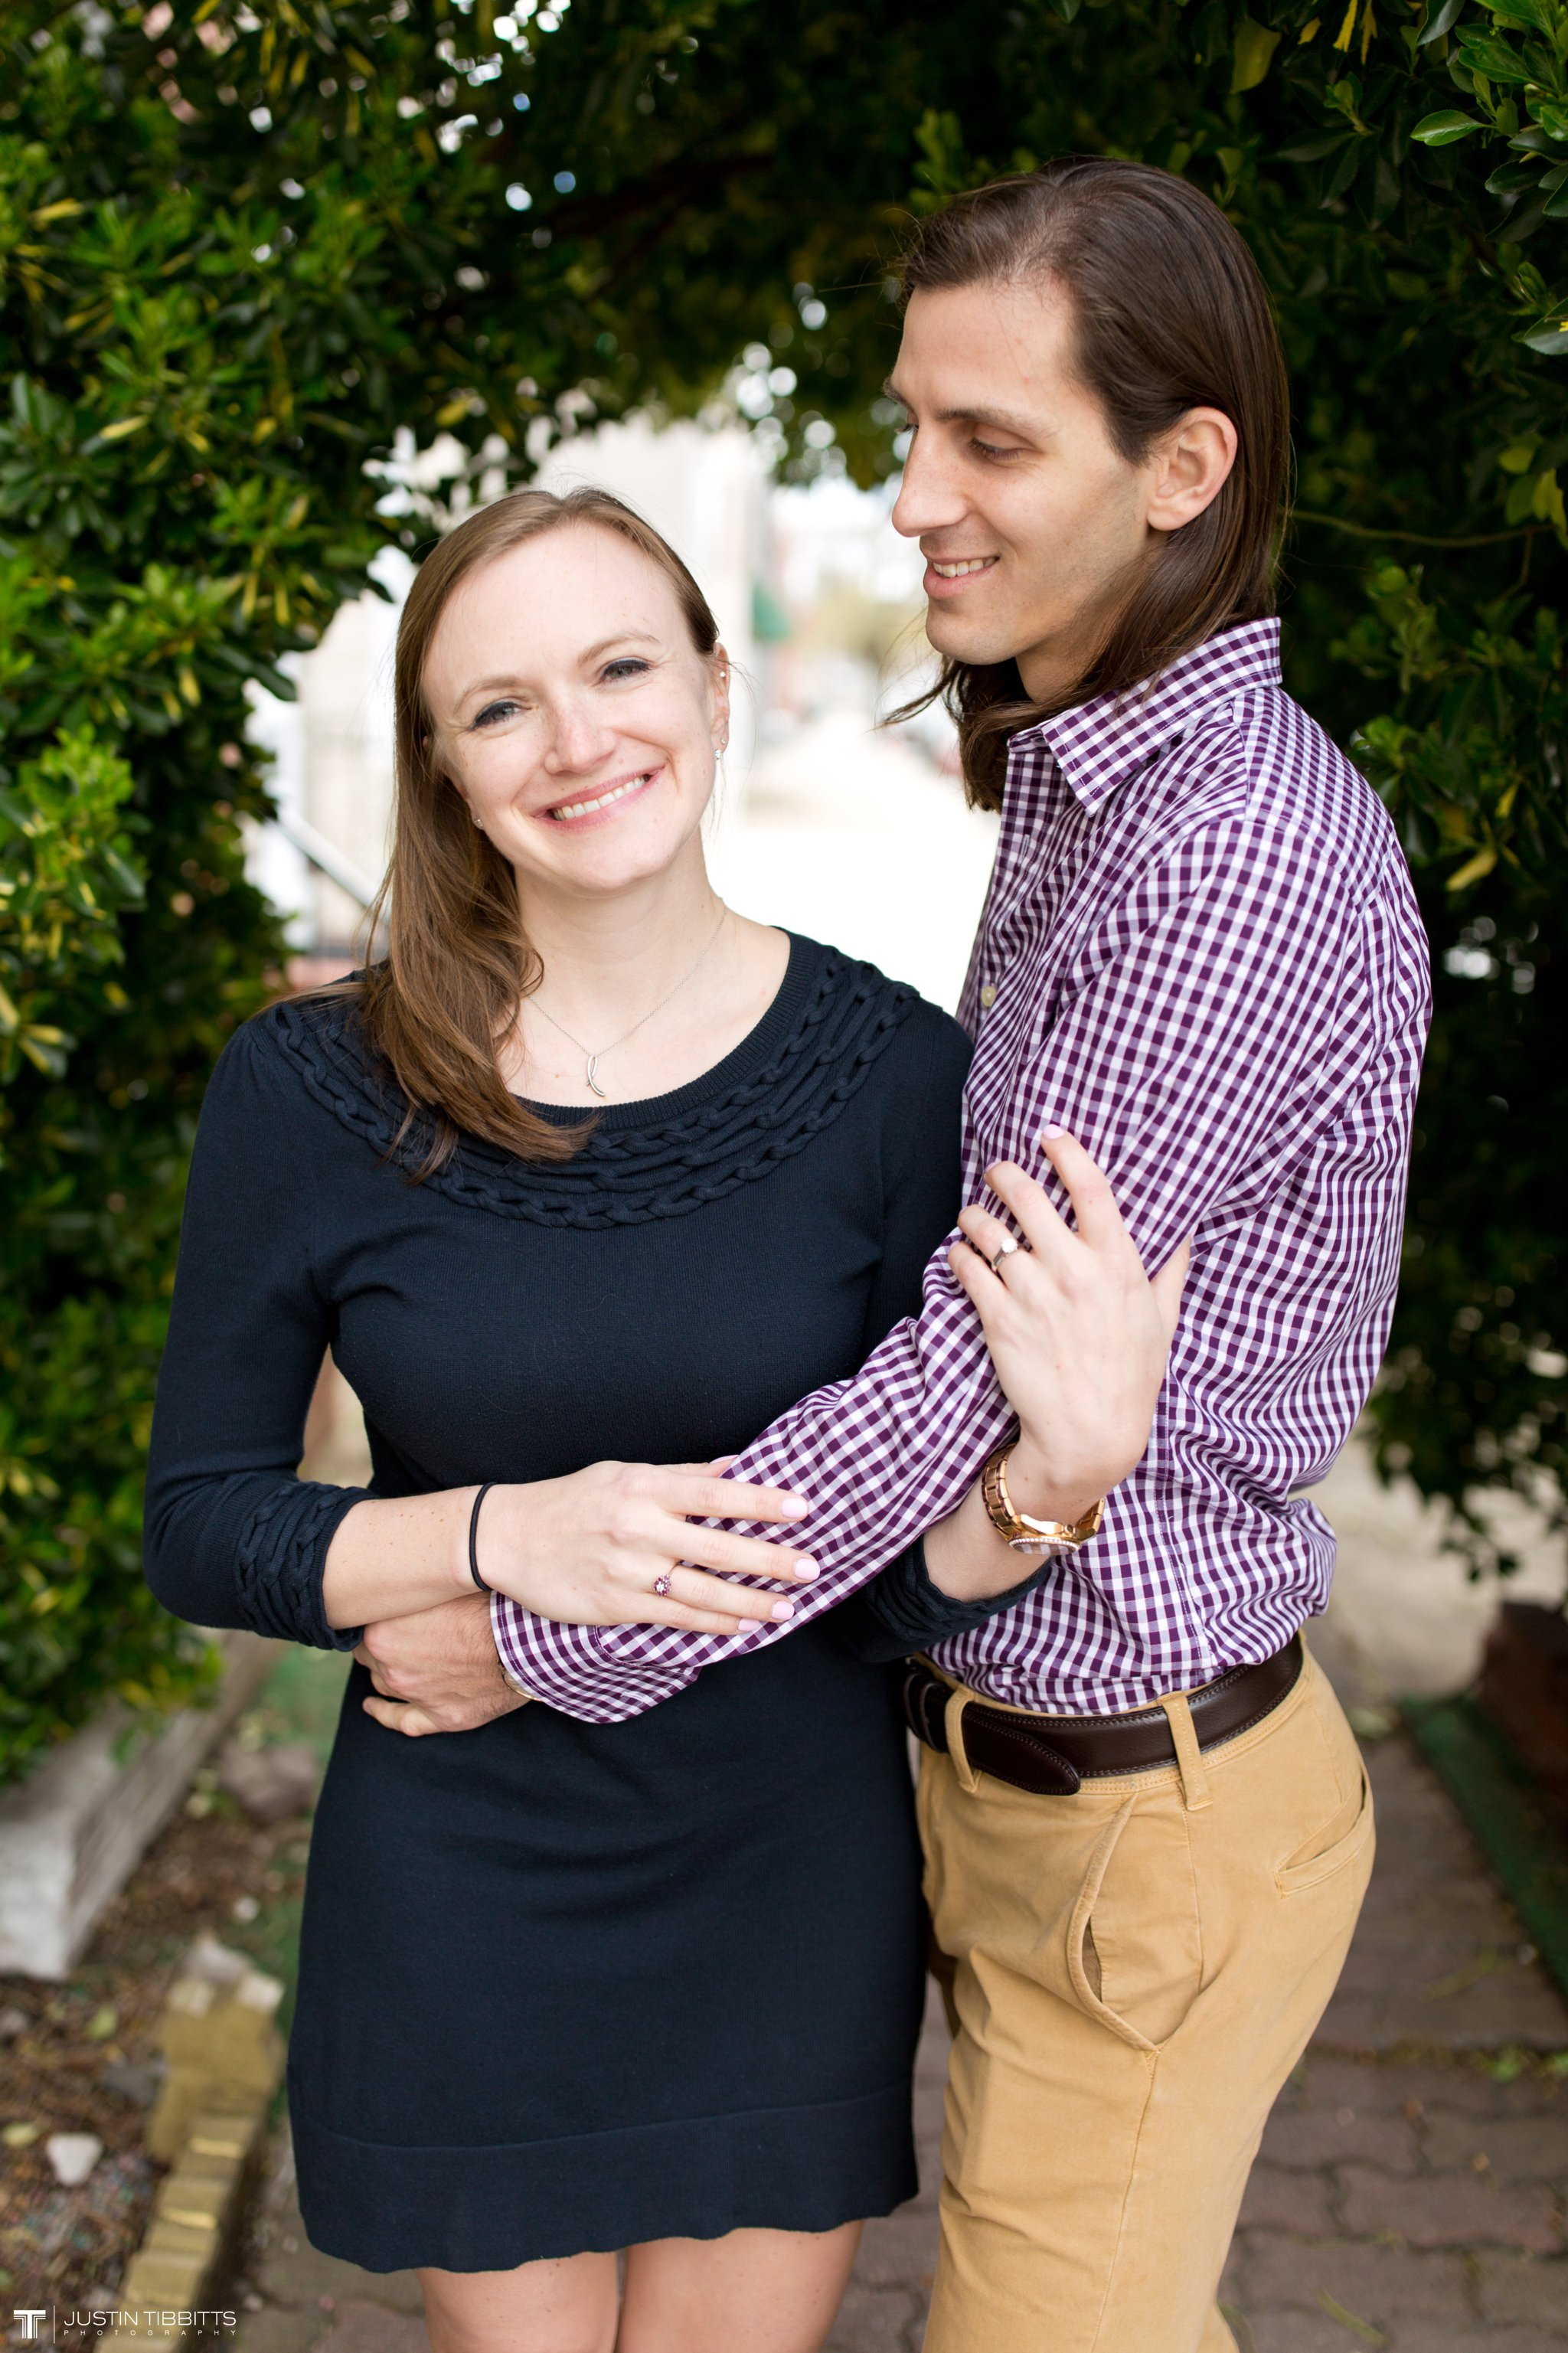 Baltimore Engagement Photos with Lauren and Dustin_0020